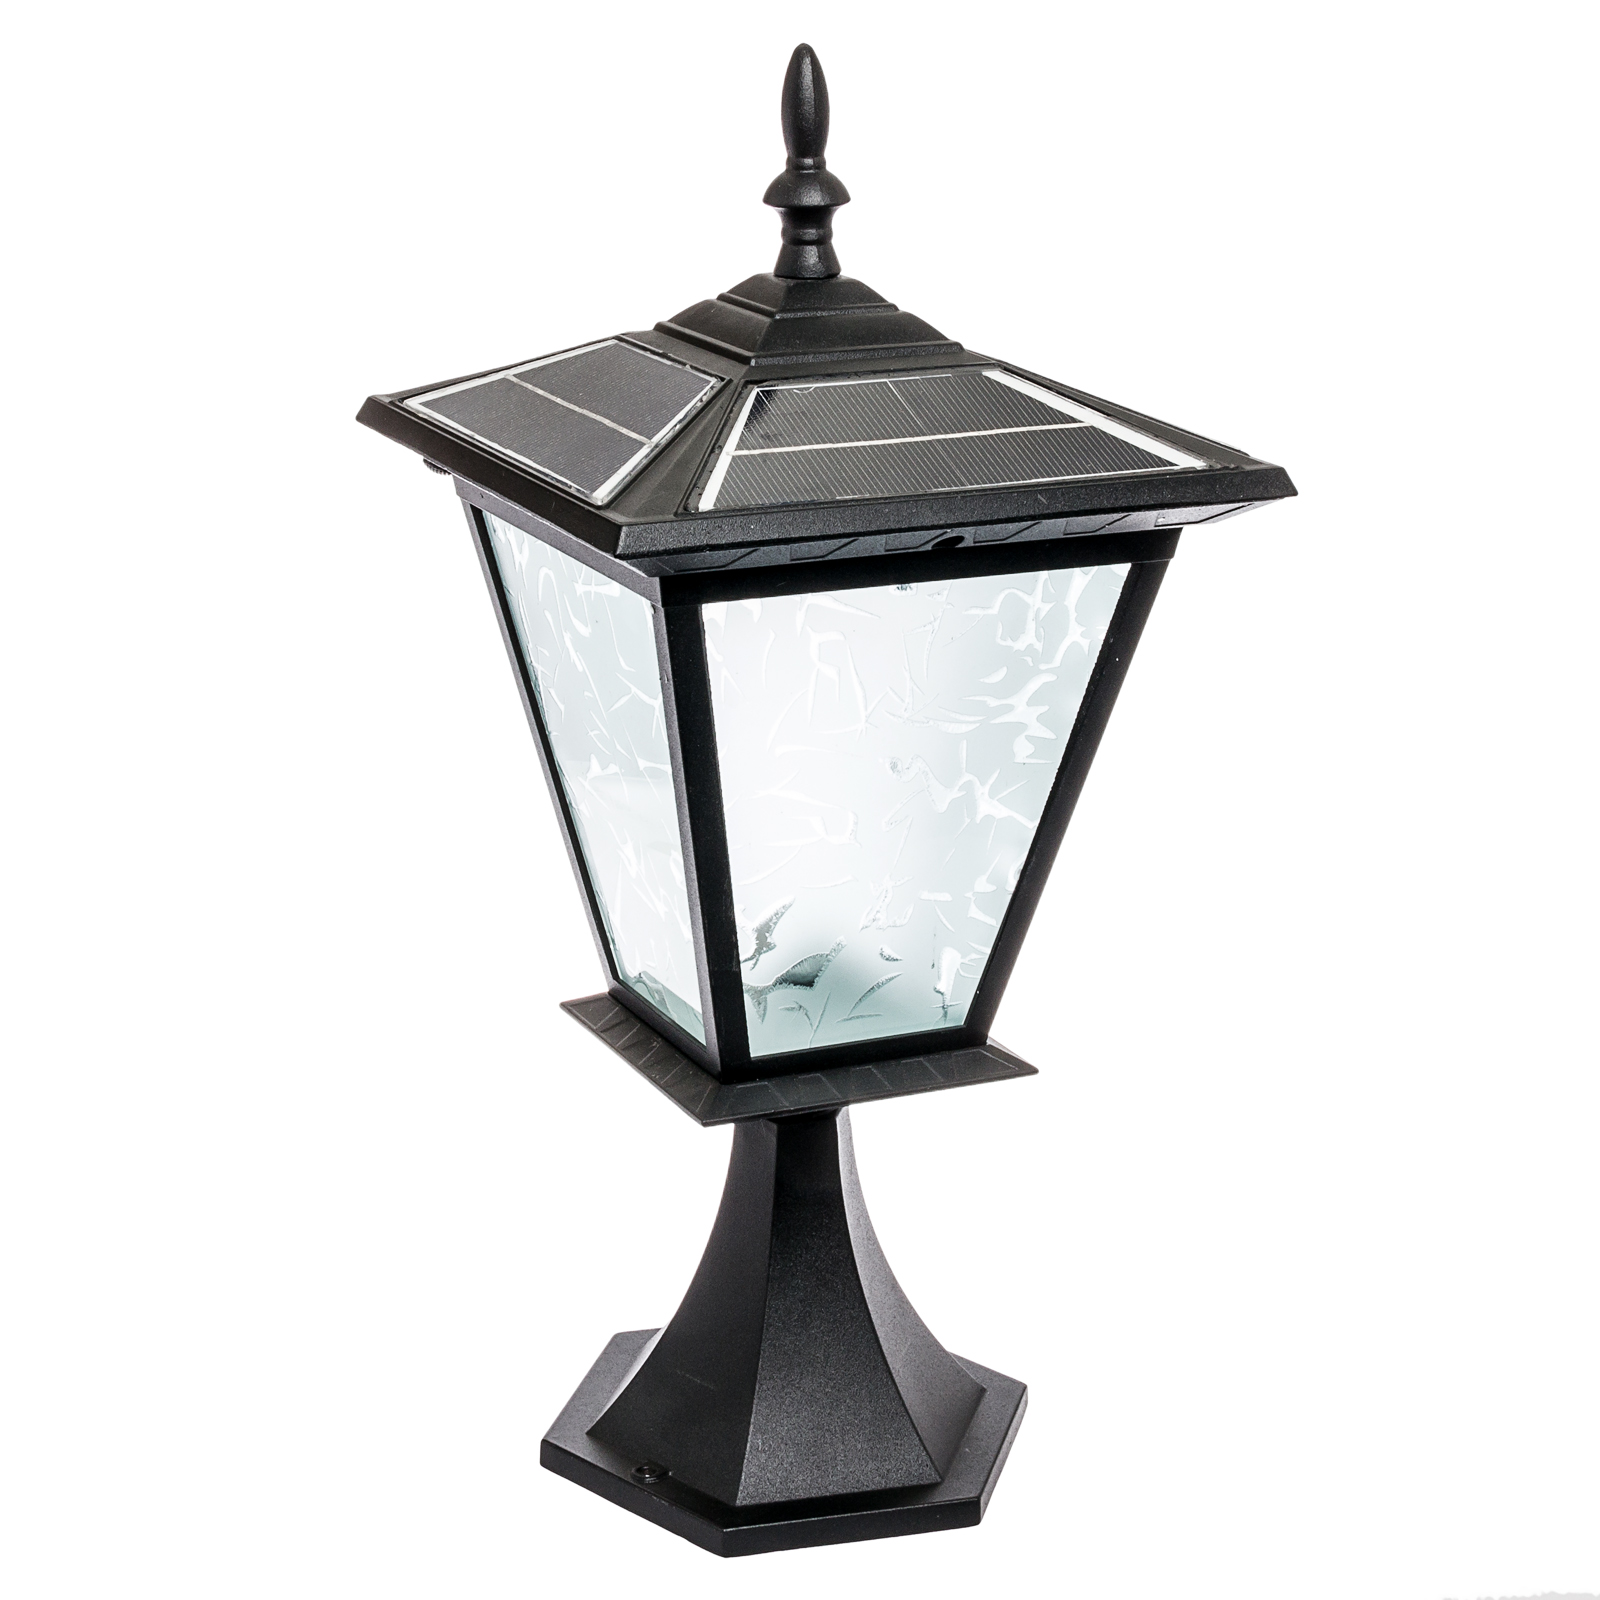 Outdoor Post Lights Led: Reusable Revolution 3 LED Solar Outdoor Garden Post Cap